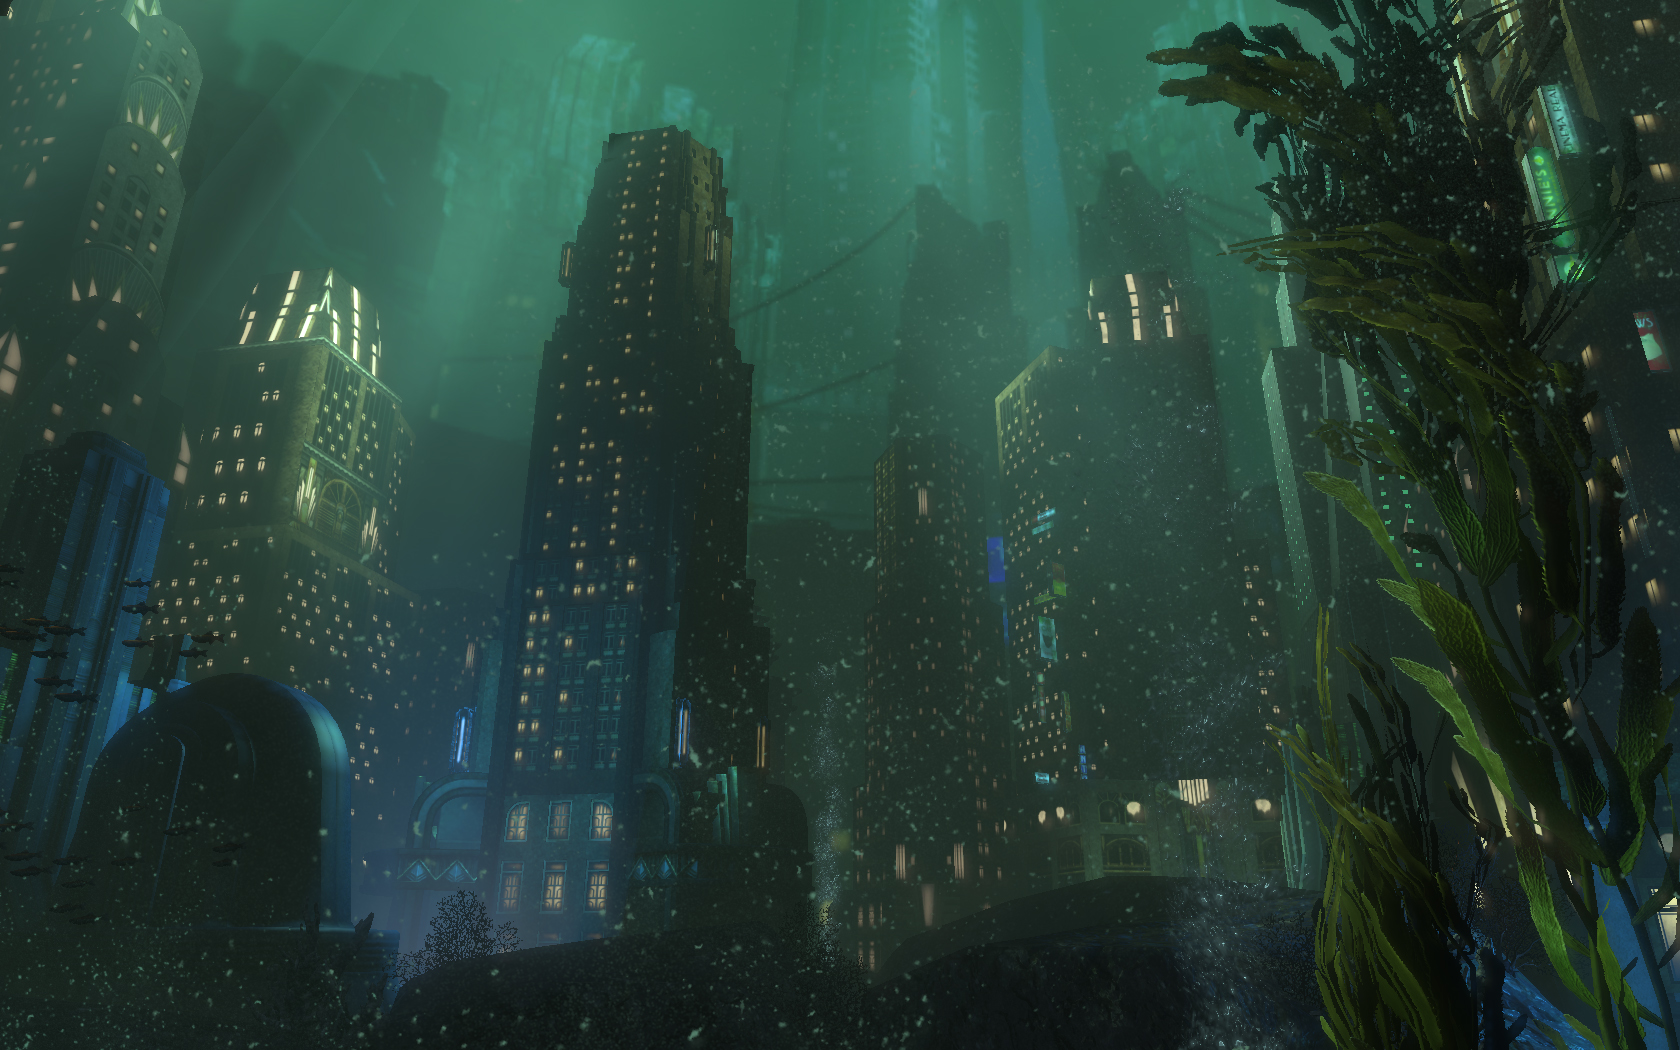 Bioshock Rapture Wallpaper Hd 1600x1000 Download Hd Wallpaper Wallpapertip